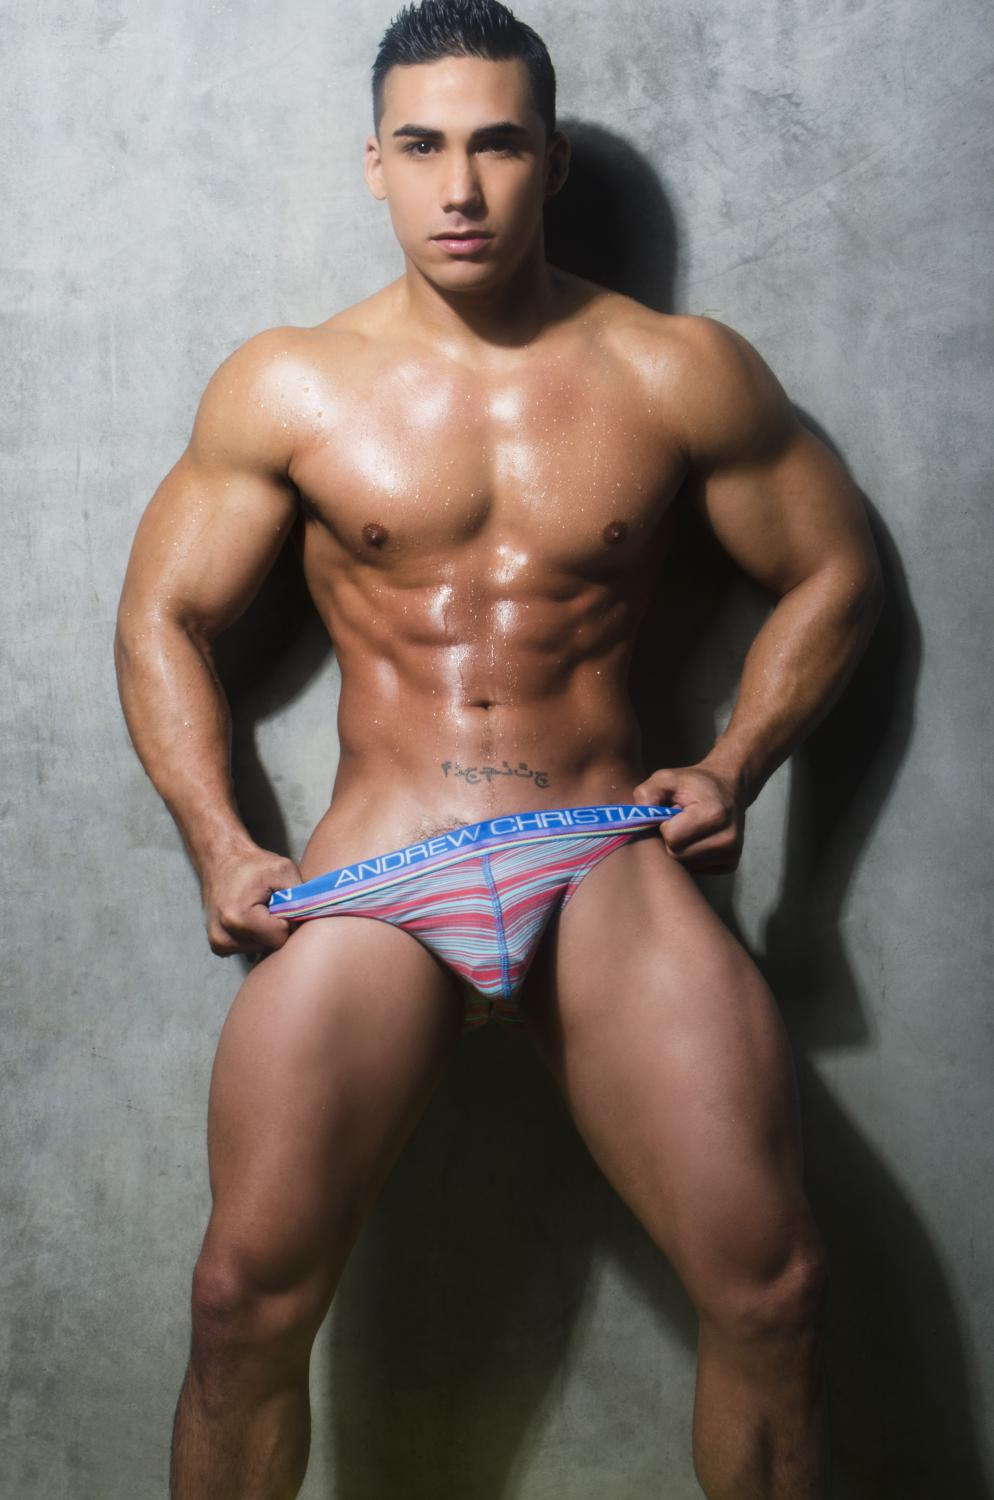 Topher Di Maggio has appeared as eye candy before ( July 13, 2015 ...